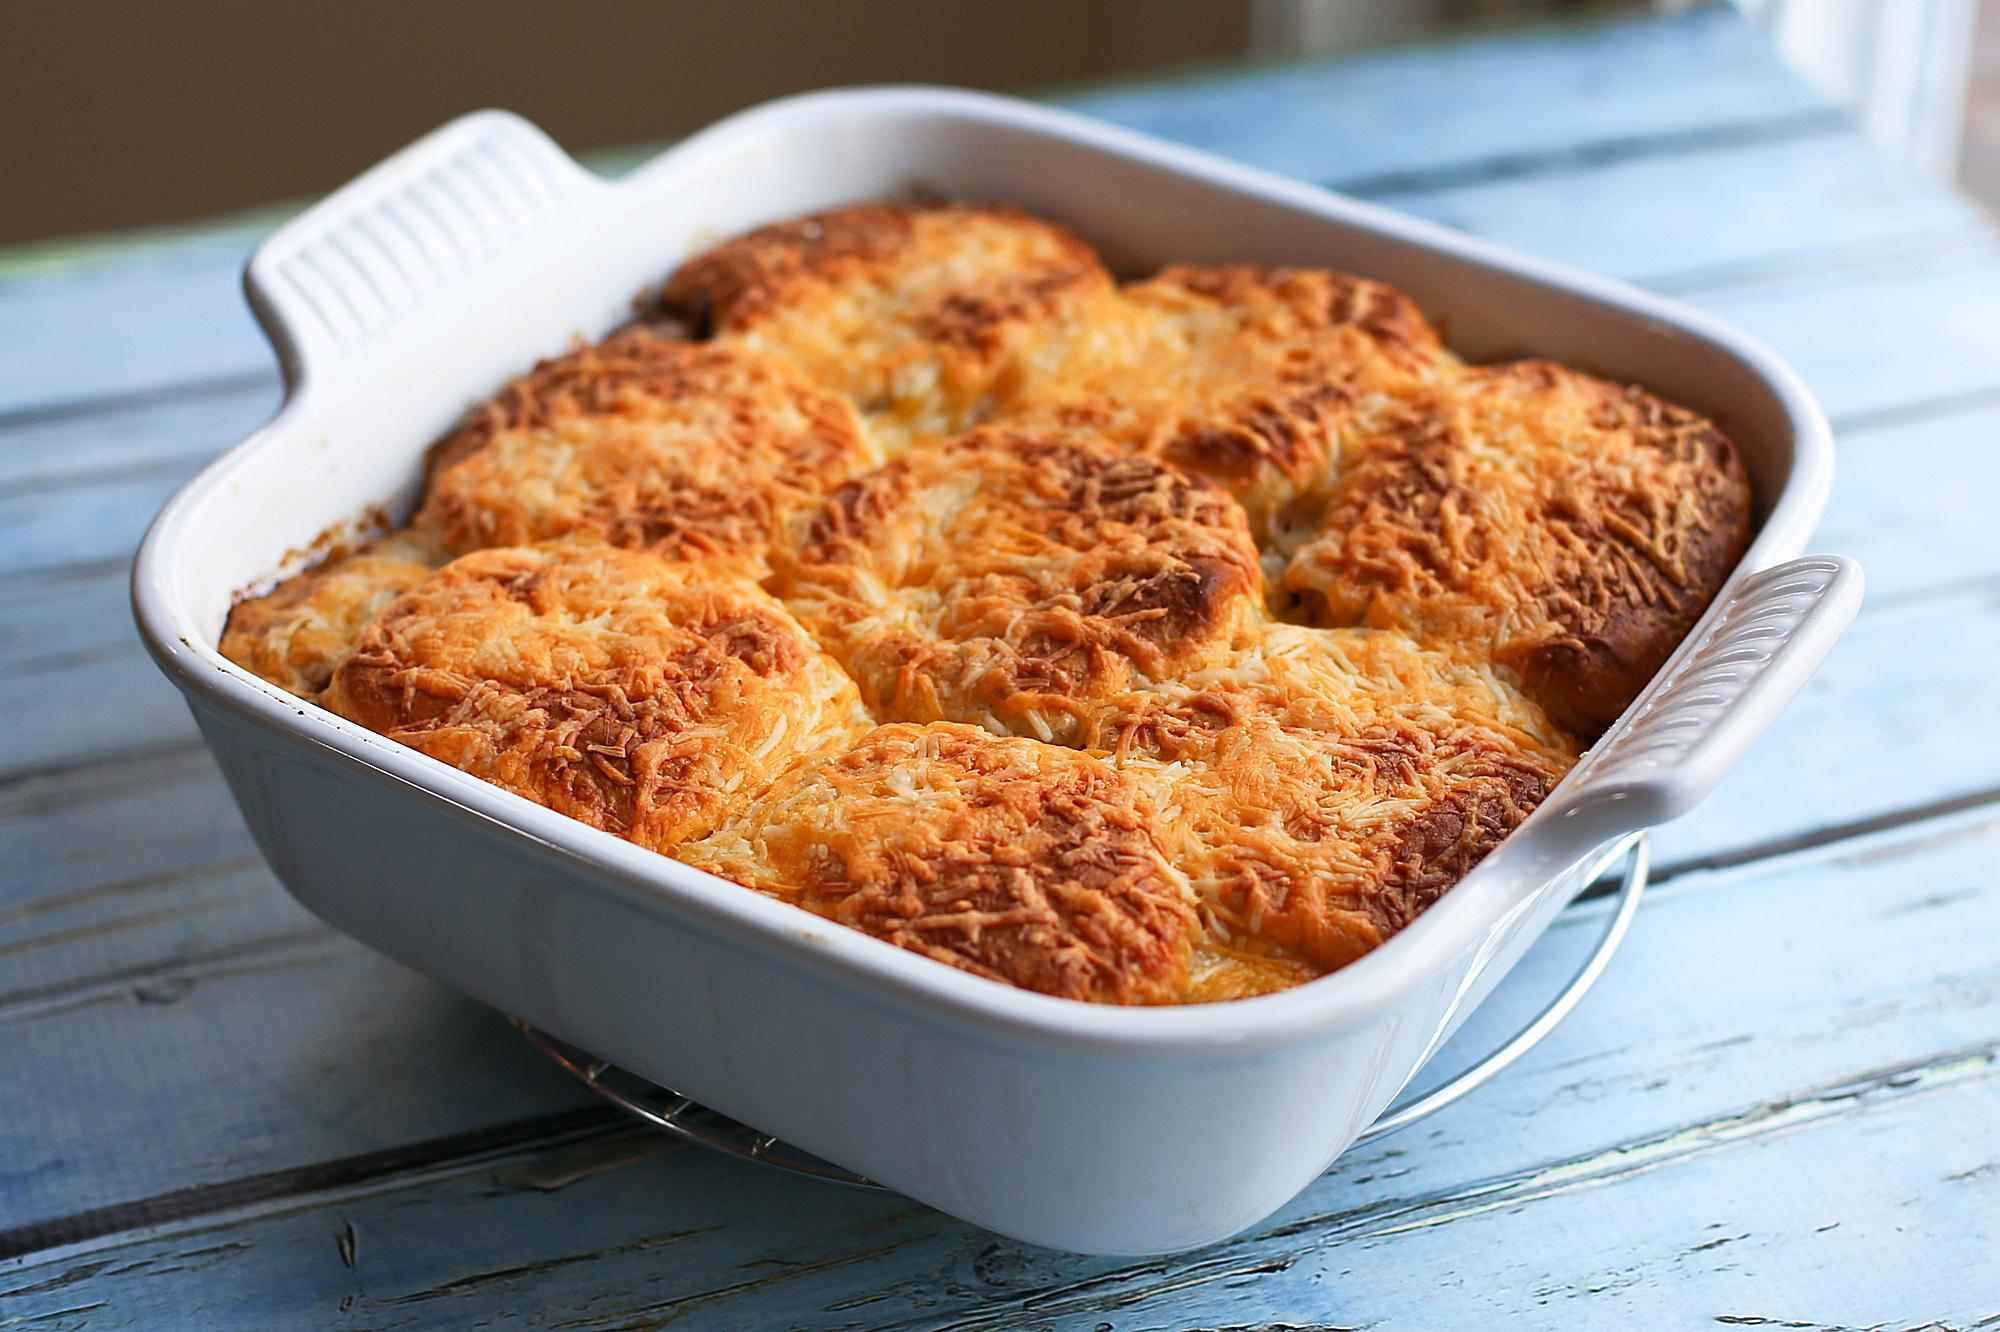 Tex-Mex style beef and biscuit casserole topped with a sprinkling of cheese